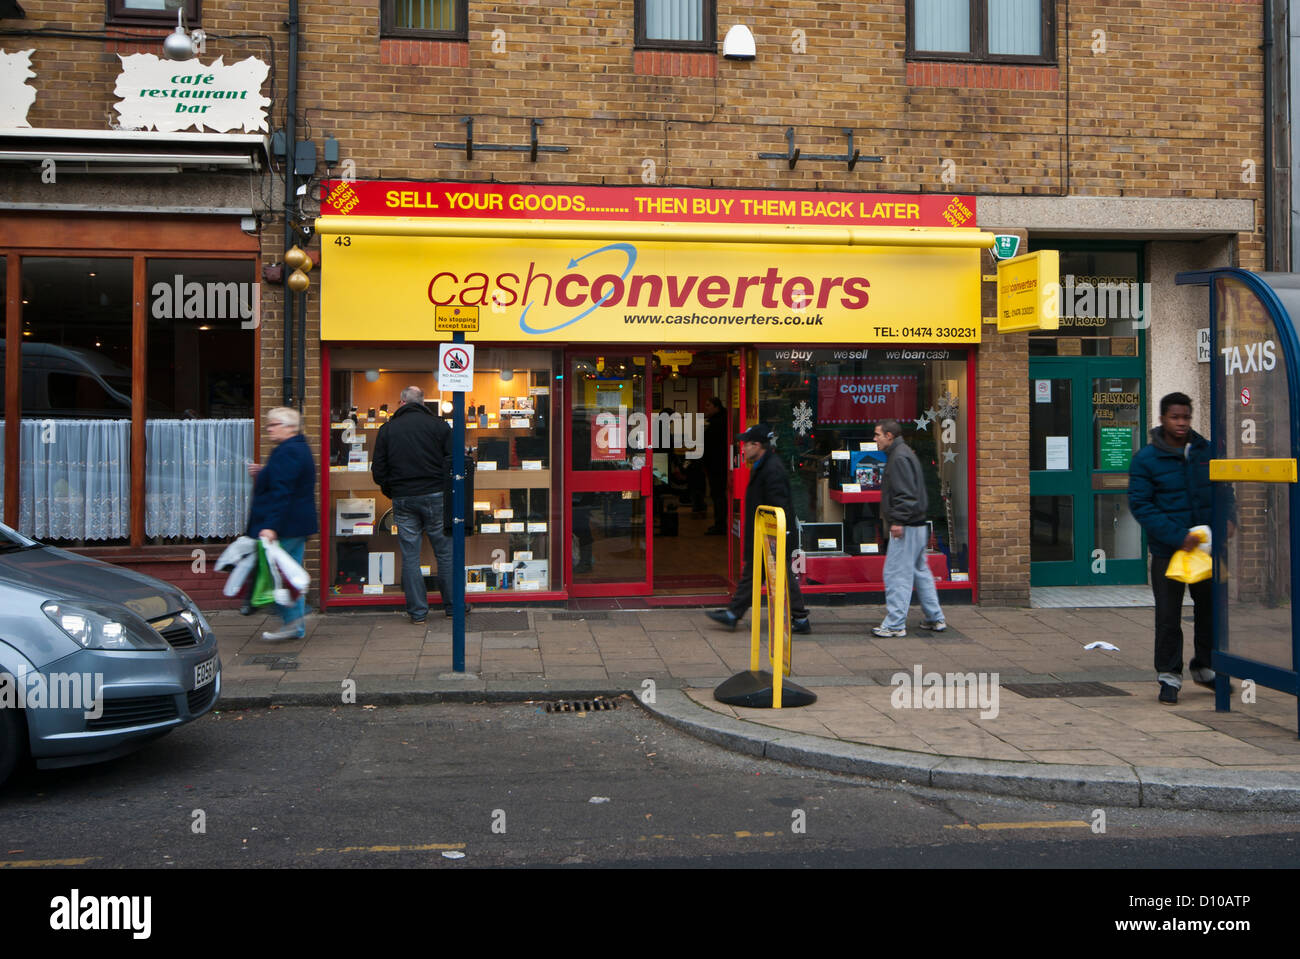 Cashconverters Shop UK - Stock Image